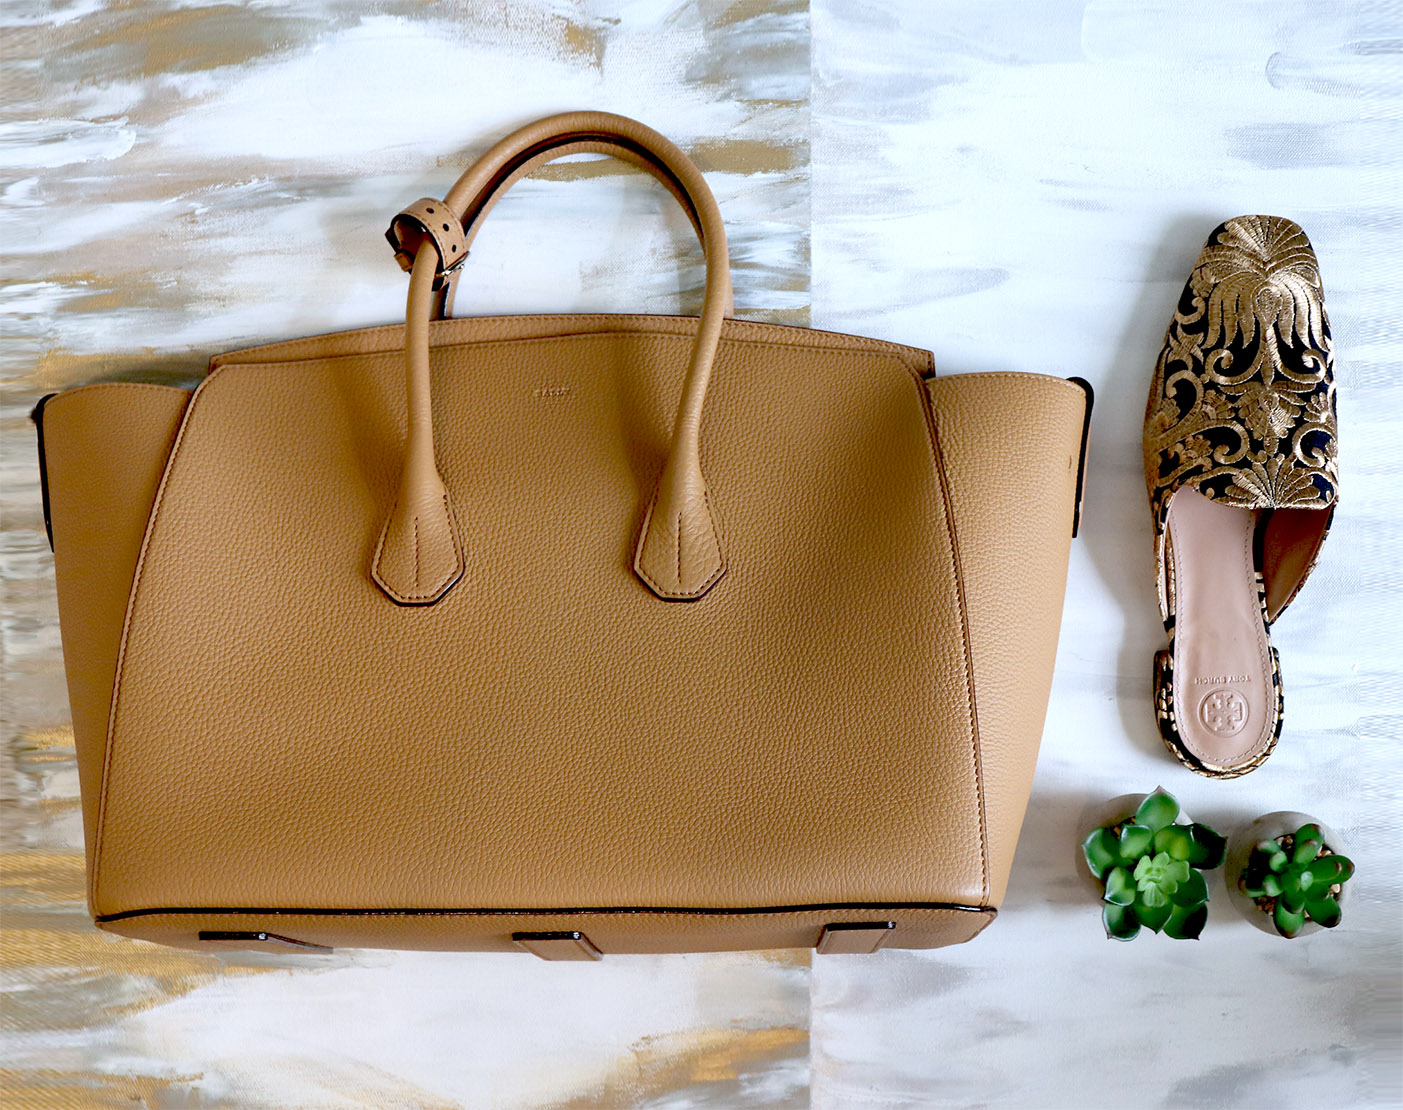 Have the sides open to have a wider handbag shape. Perfect for fall/winter and to toss in all your coats and layers.